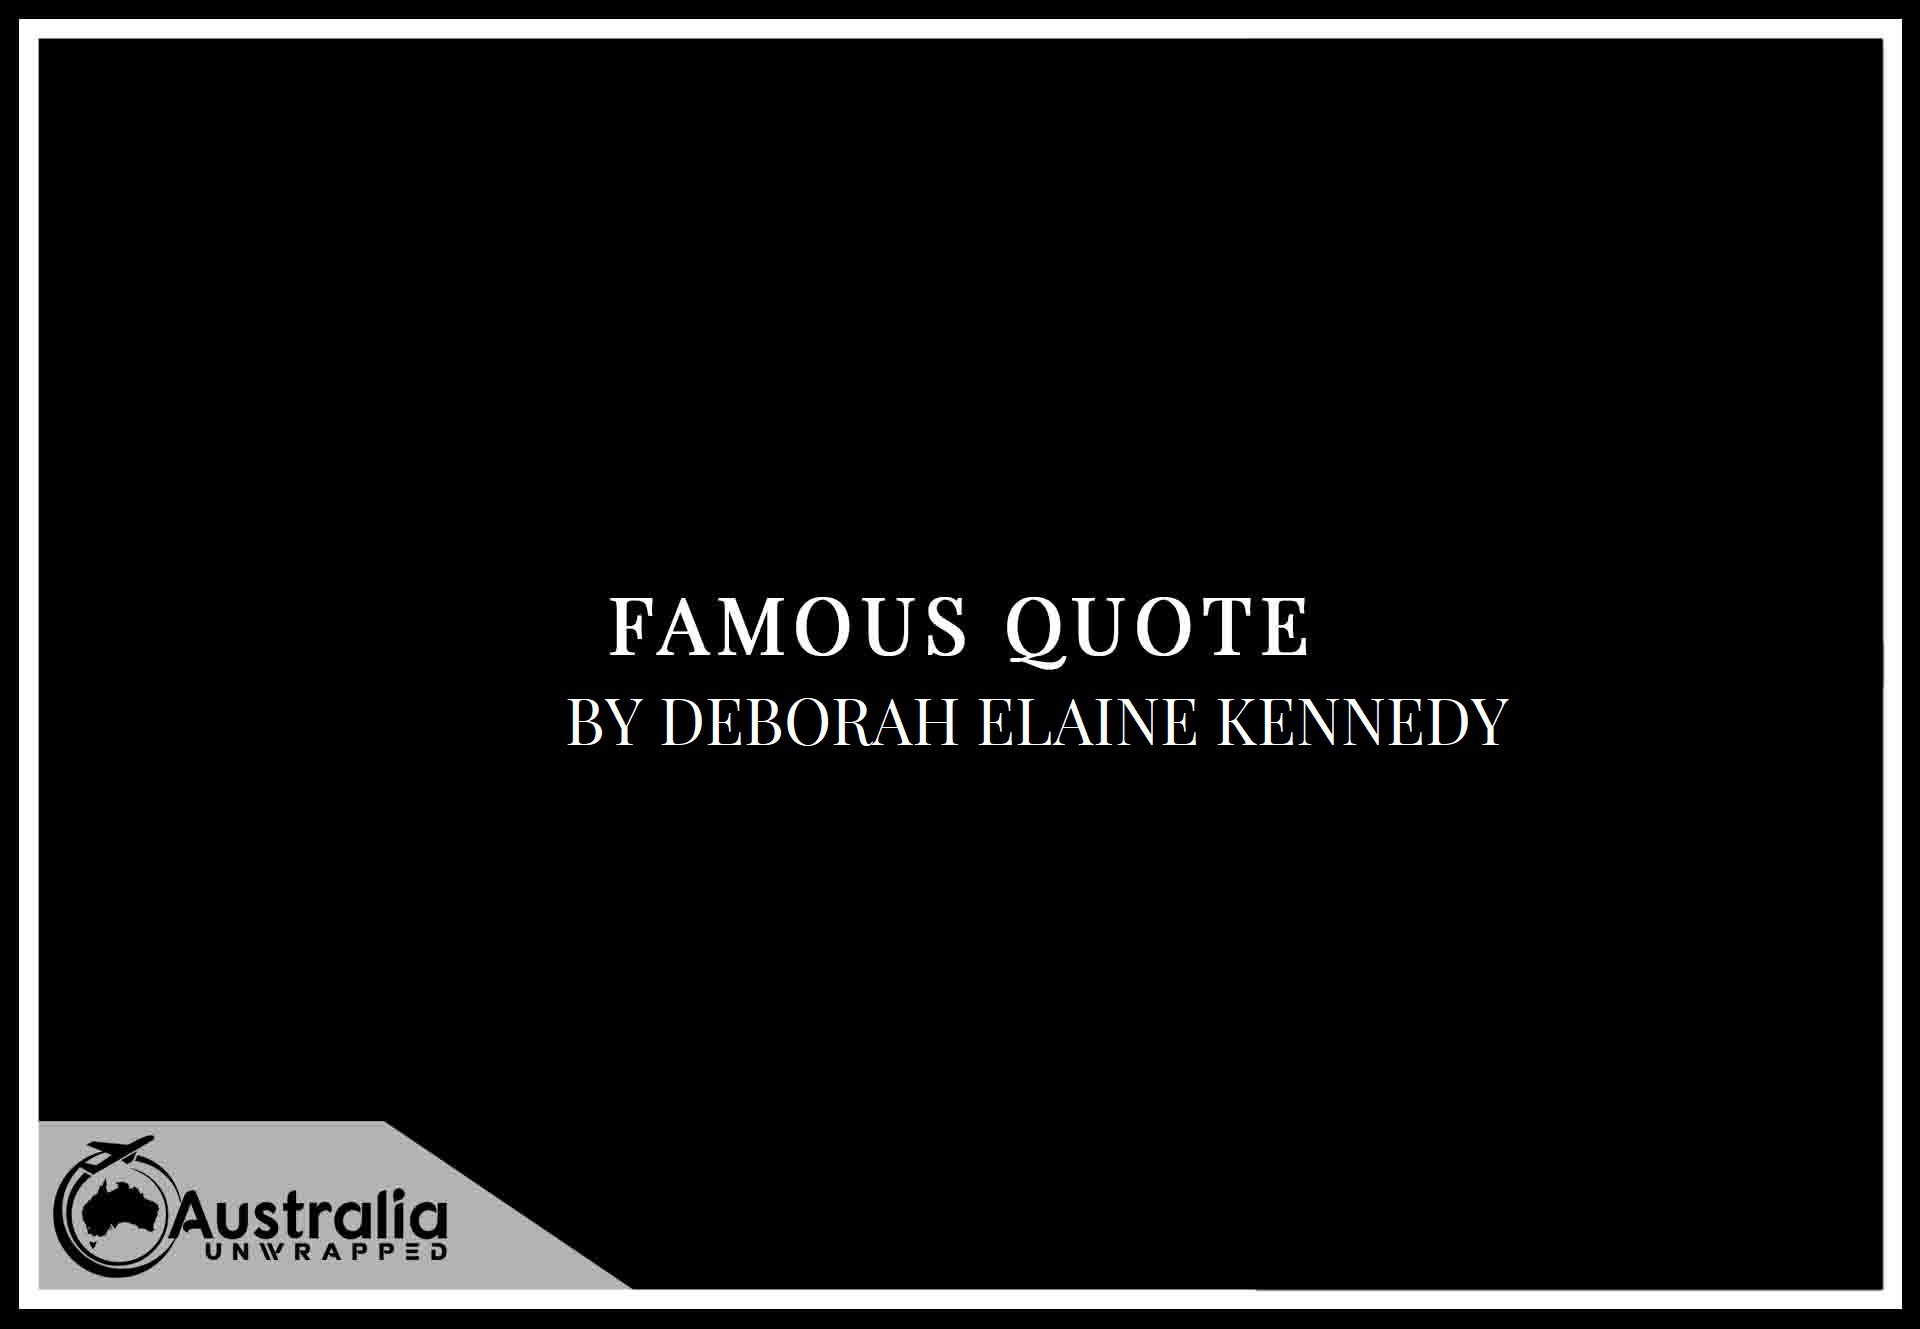 Deborah Elaine Kennedy's Top 1 Popular and Famous Quotes